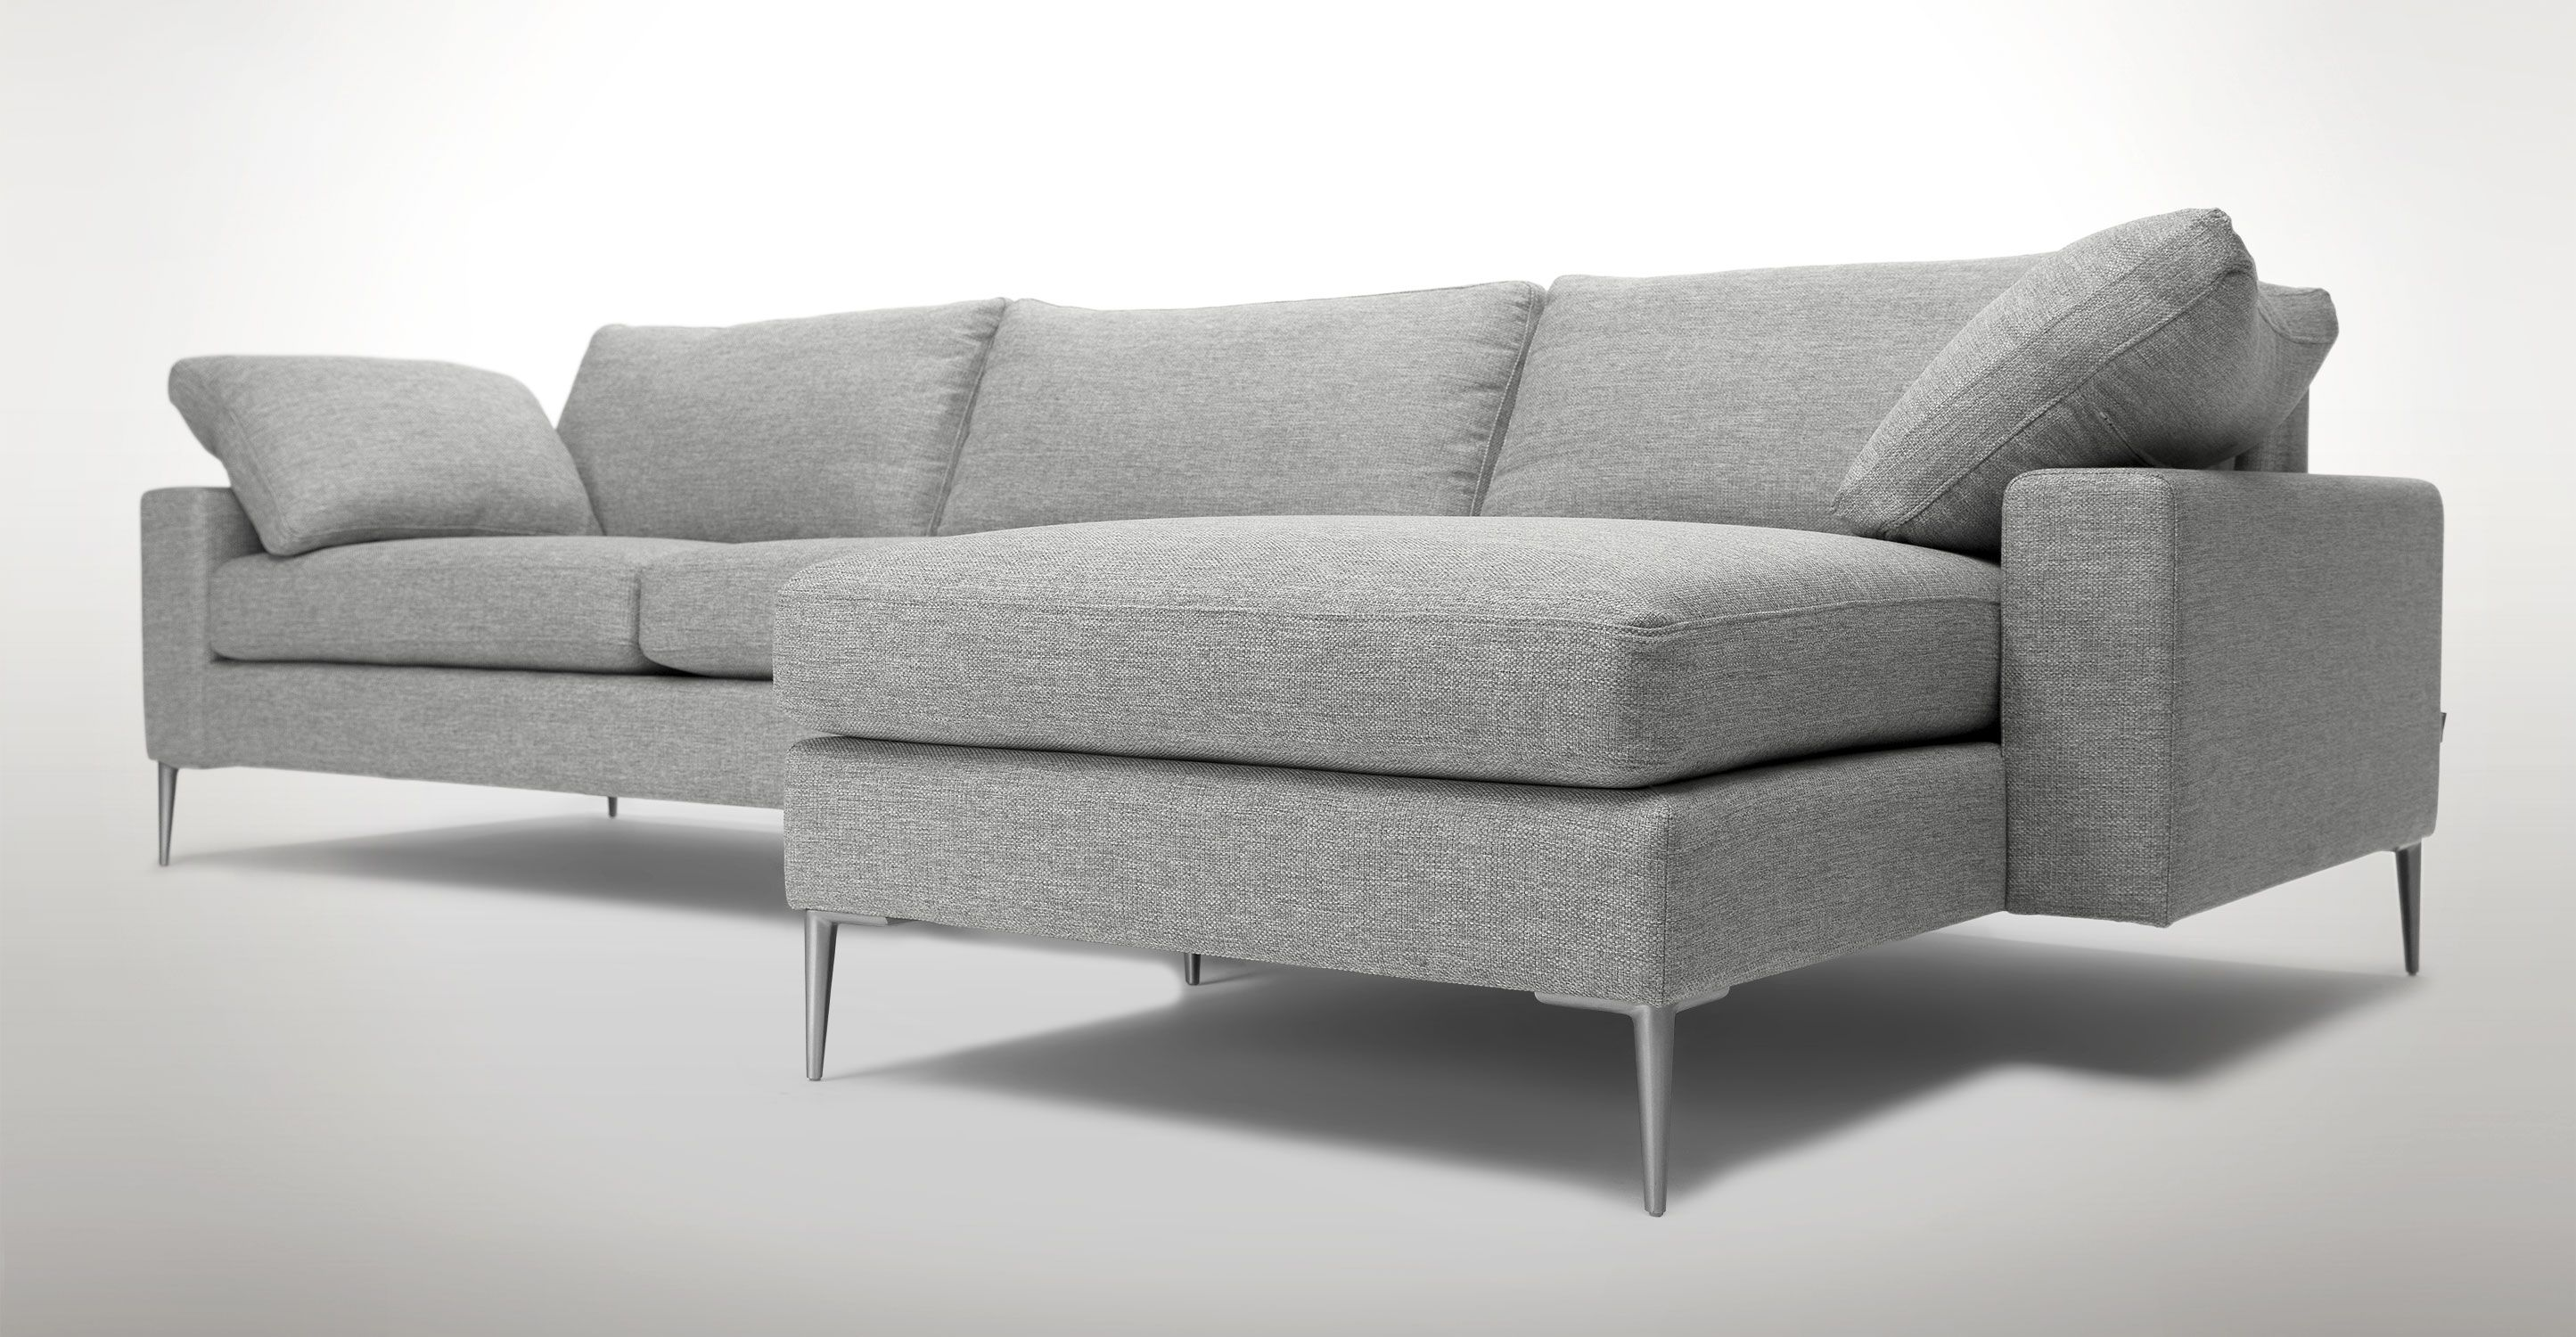 Brilliant Nova Winter Gray Right Sectional Sofa Seating Sofa Ncnpc Chair Design For Home Ncnpcorg